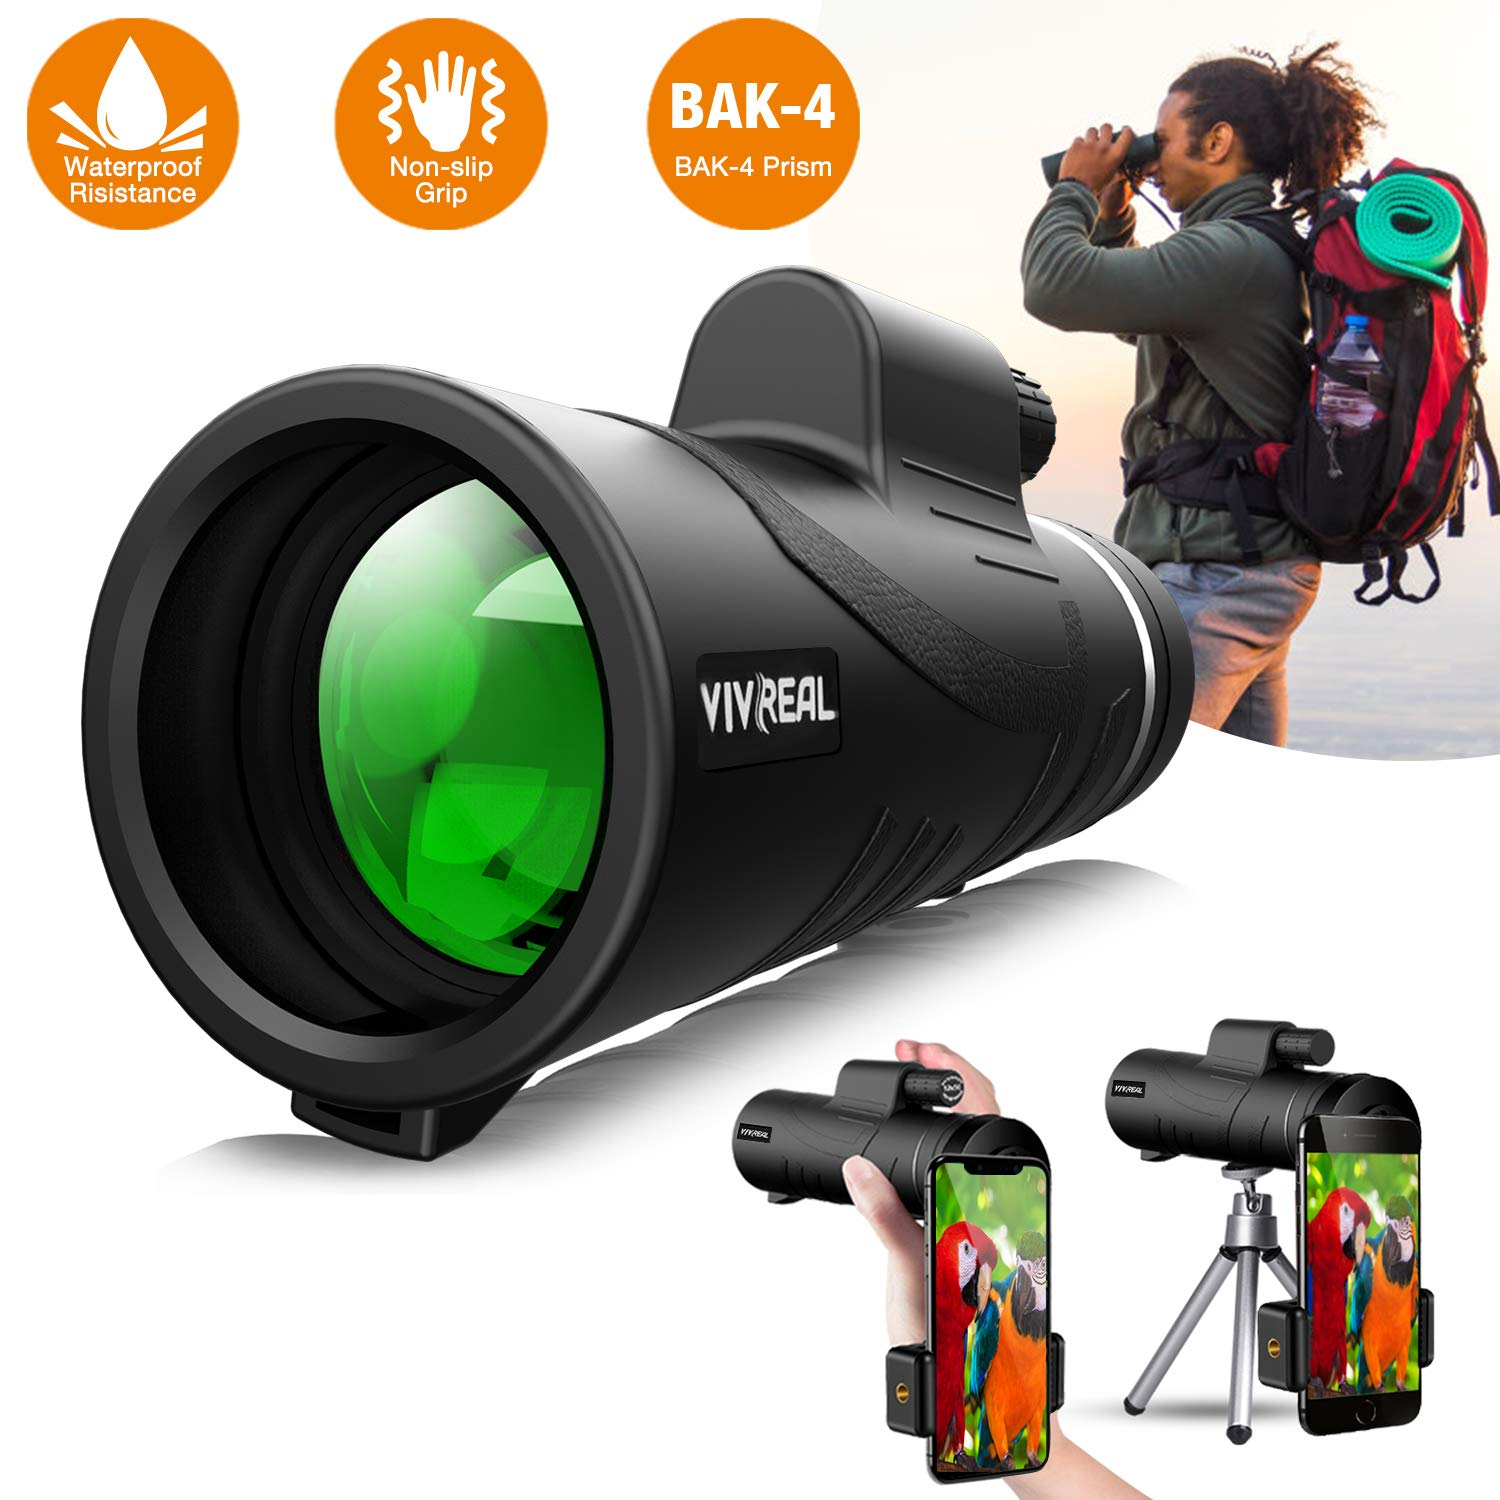 10x42 Monoculars Telescope| High Power HD Monocular with Smart-phone Holder & Tripod -Waterproof Compact Monocular with Durable FMC BAK4 Prism| Zoom Monocular for Bird Watching, Camping, Hiking, Match by VIVREAL